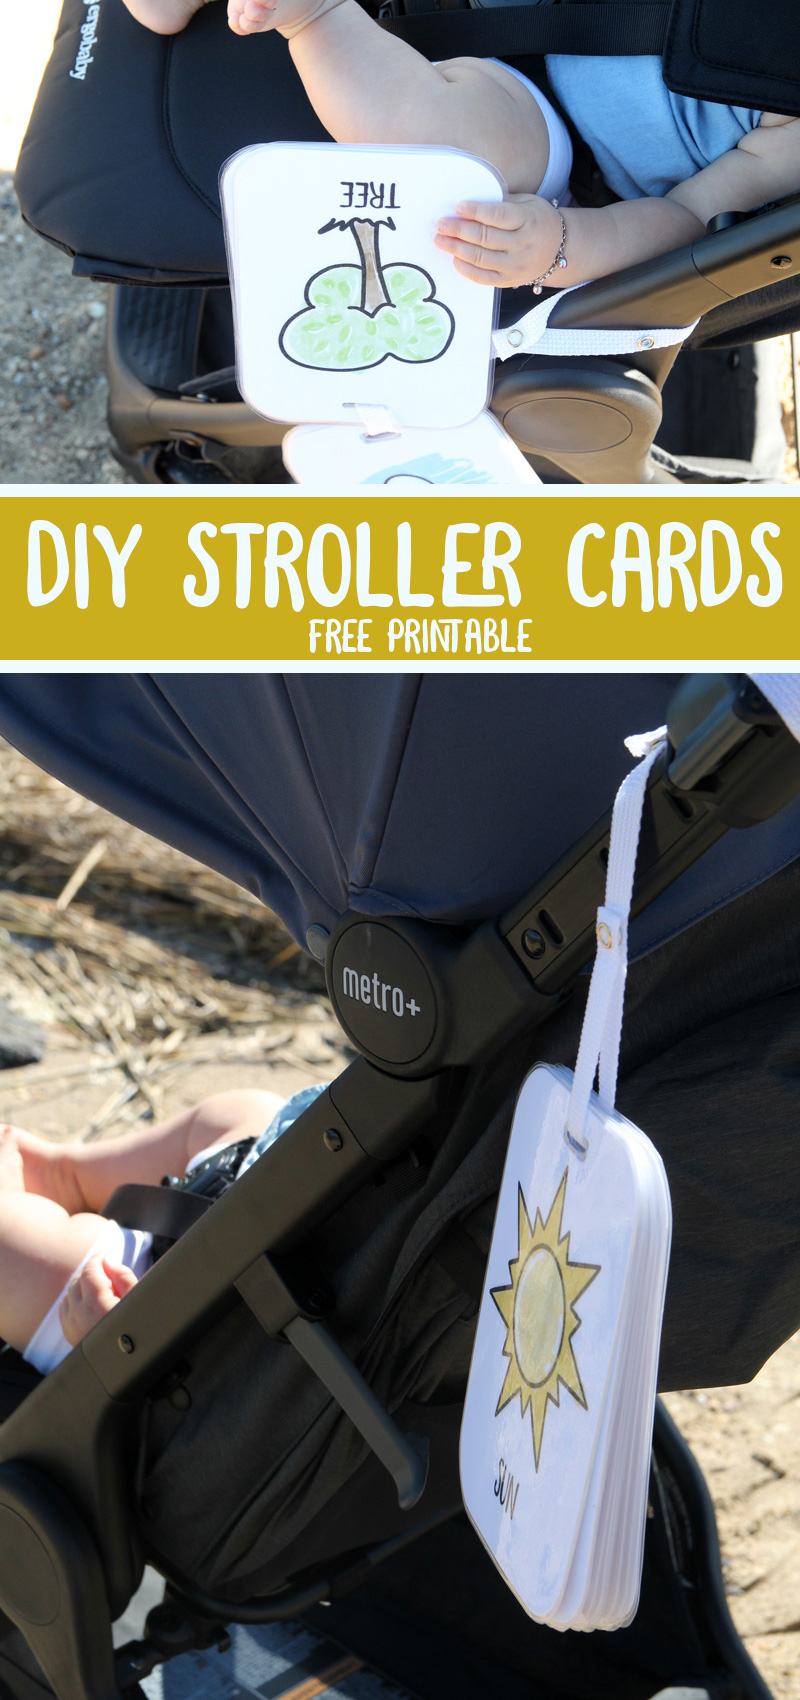 stroller cards and Ergobaby Metro+ Stroller review